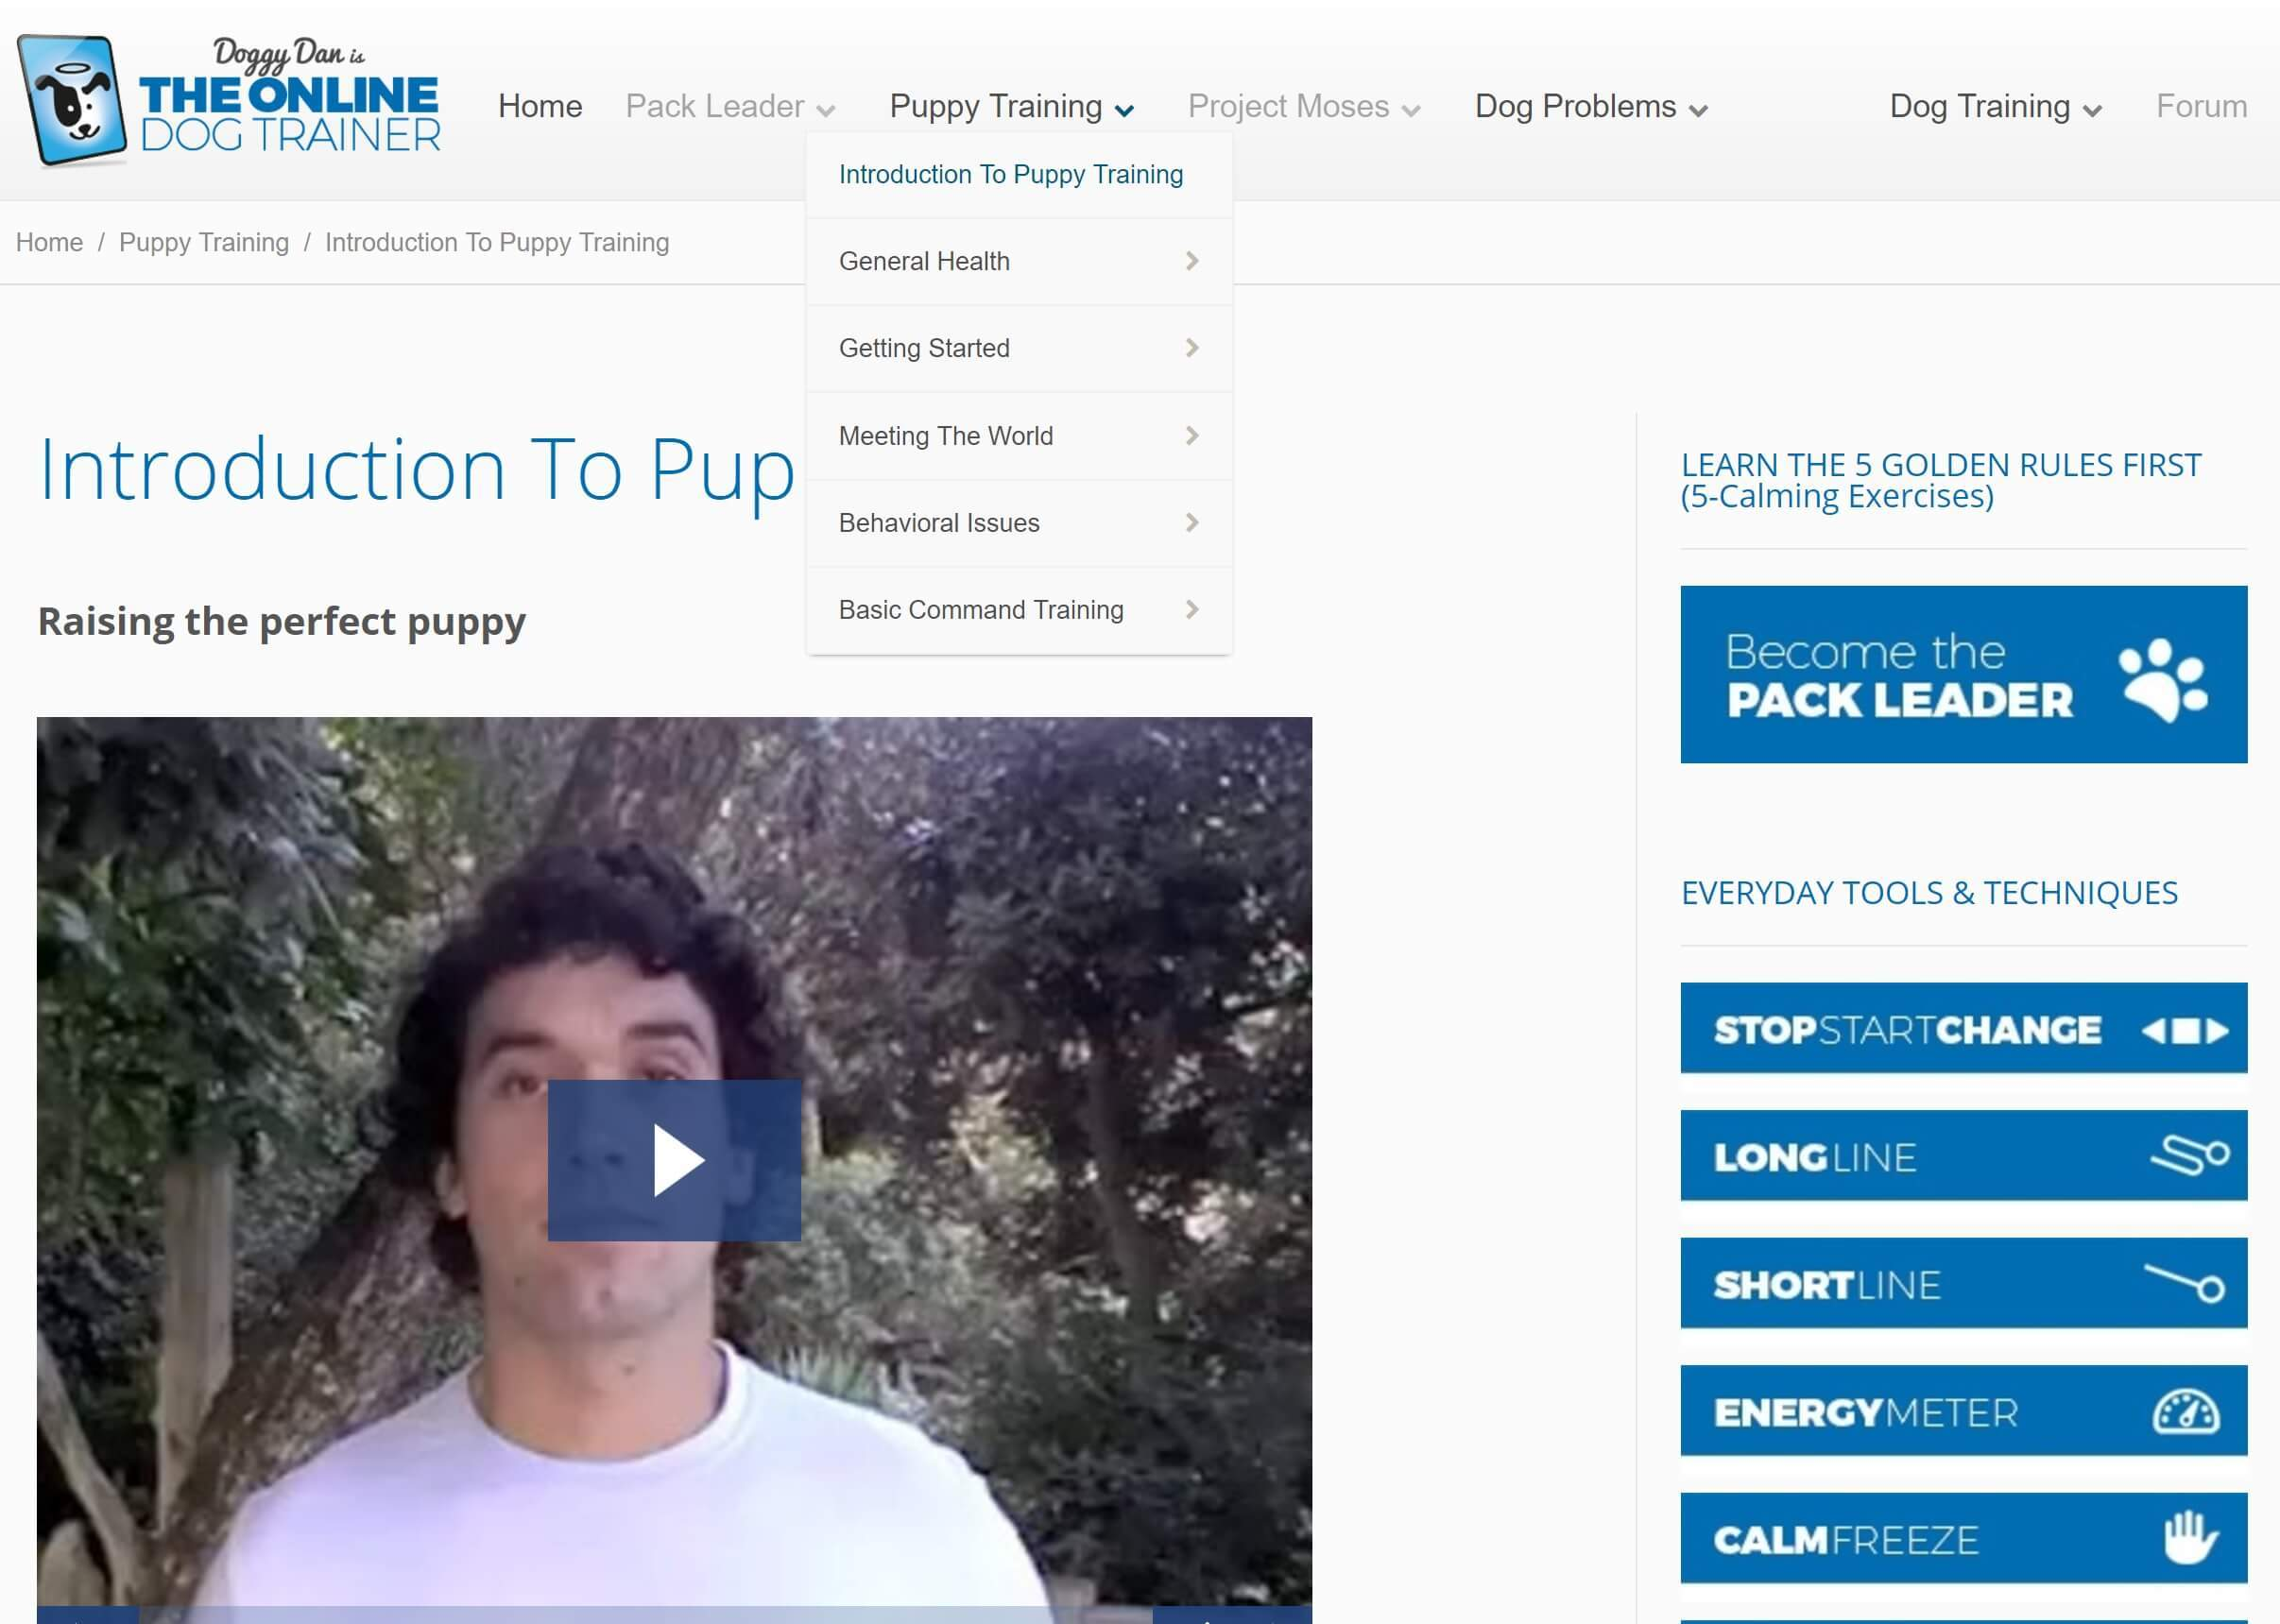 The Online Dog Trainer: Introduction To Puppy Training